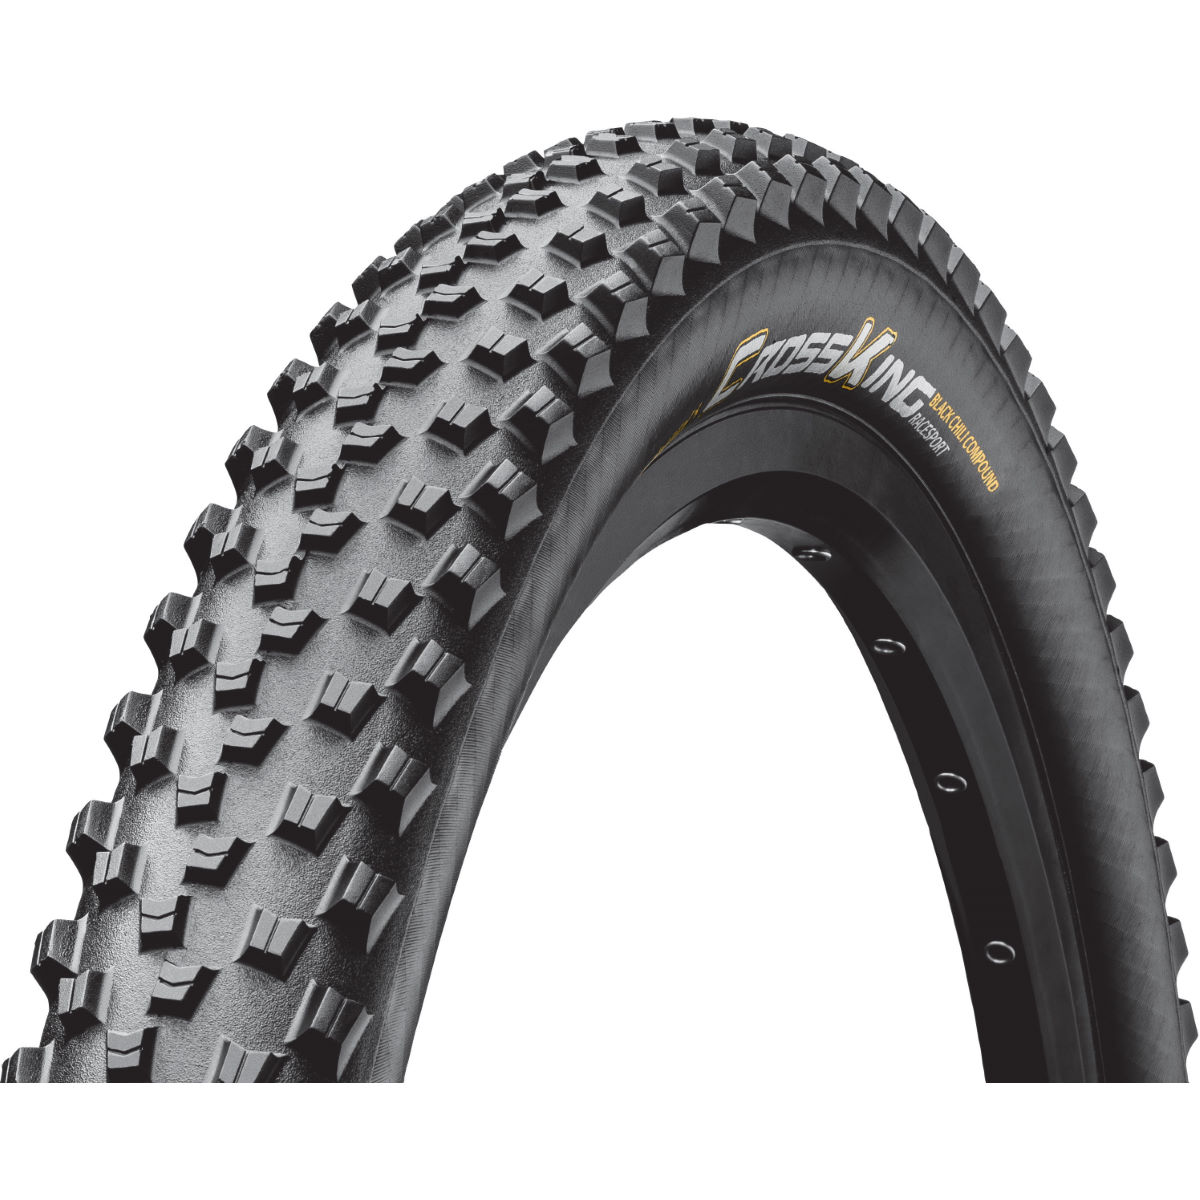 Continental Continental Cross King Folding MTB Tyre - RaceSport   Tyres